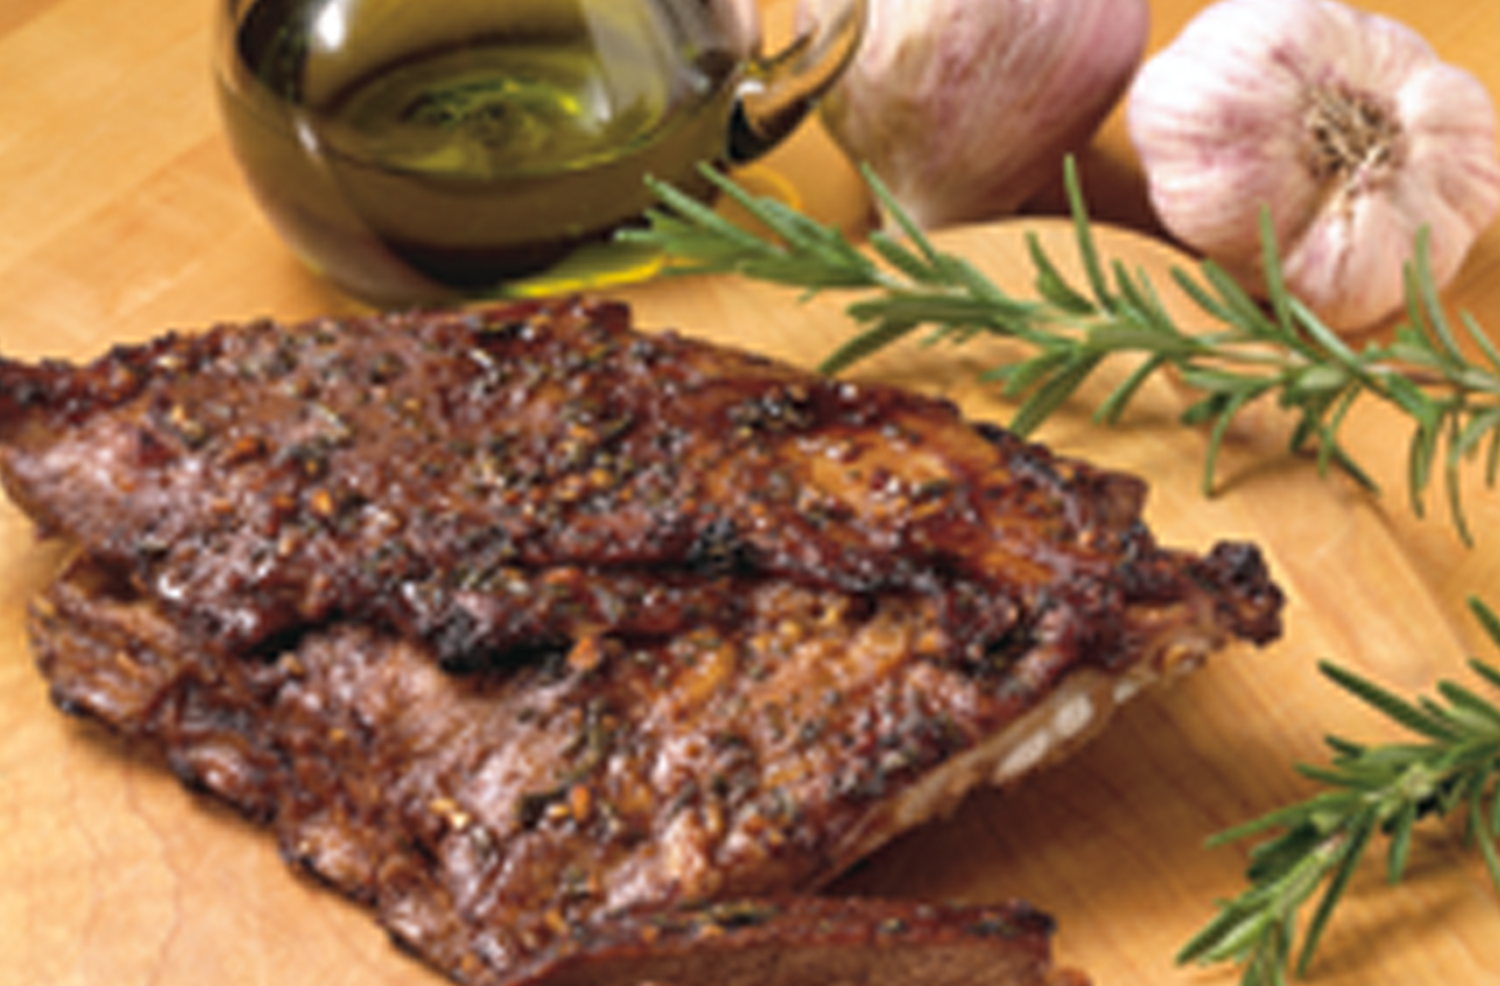 California Lamb Ribs With Garlic Glaze and Tarragon Dipping Sauce